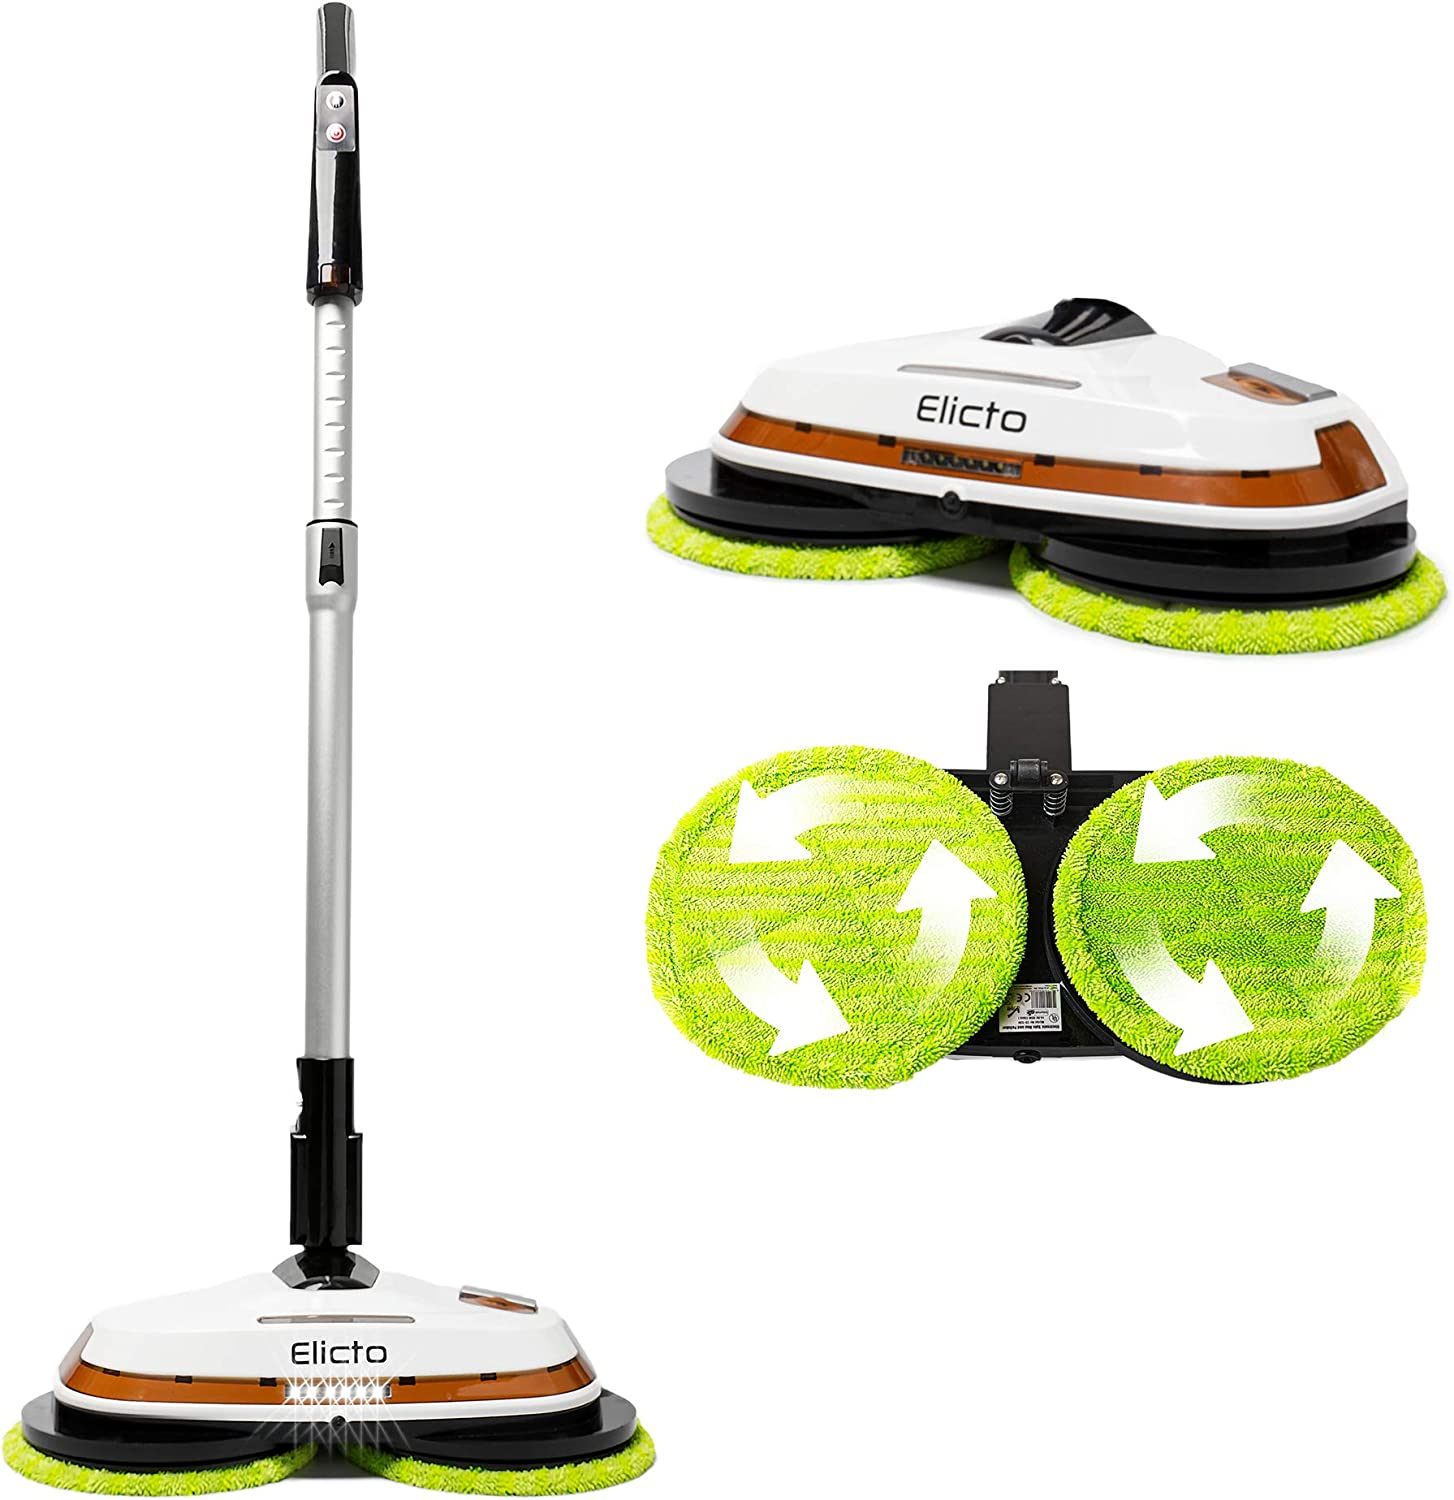 Elicto Electronic Dual Spin Mop and Polishe with Water Spray and Adjustable Height for All Hard Surfaces